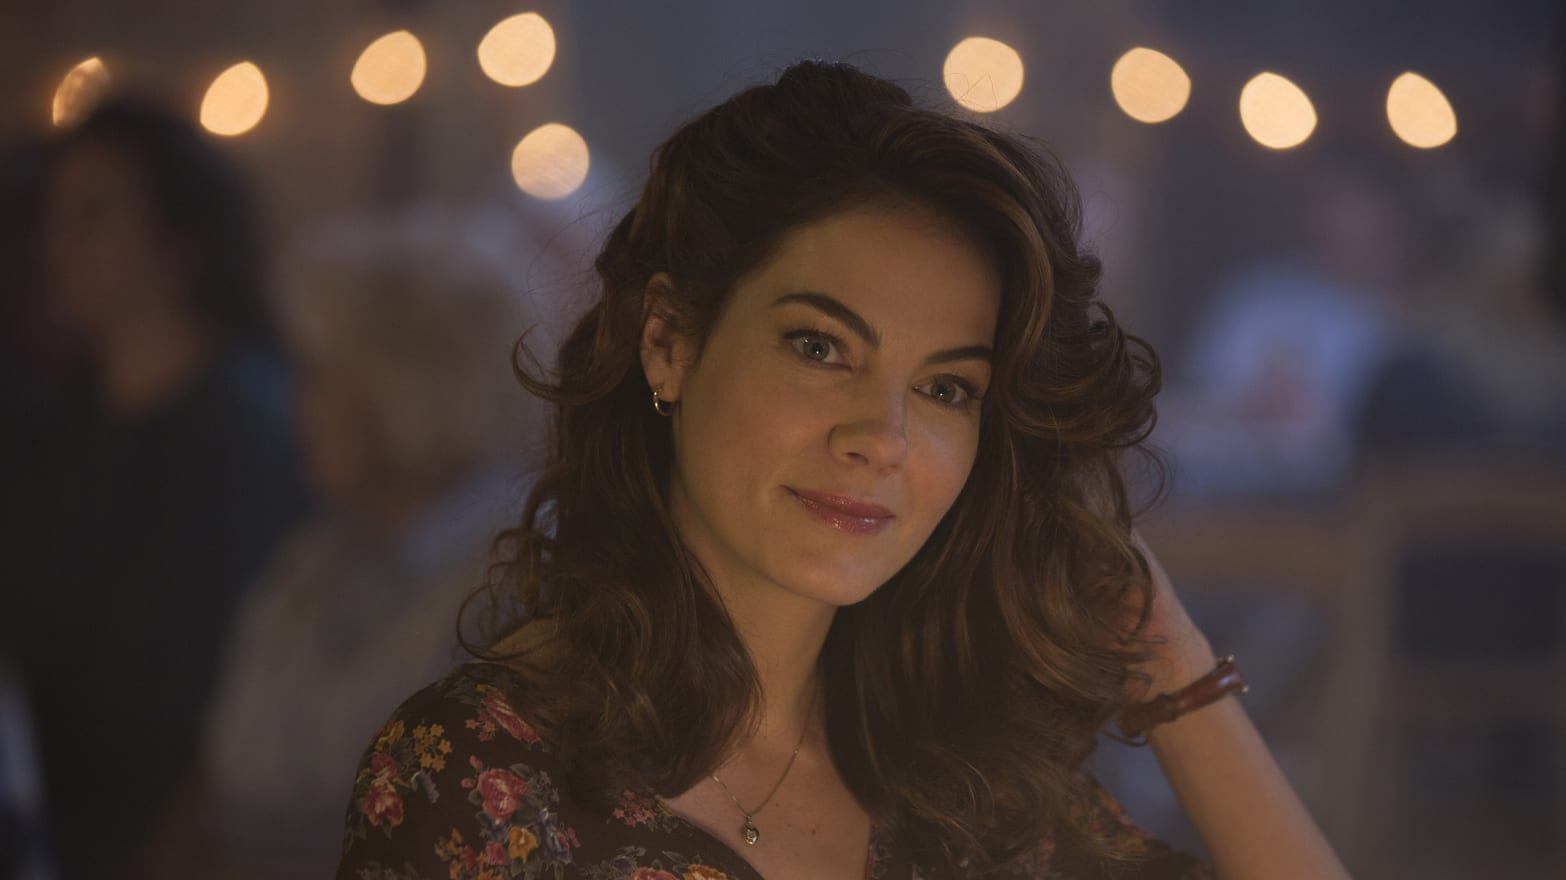 True Detective' Episode 6: Michelle Monaghan On That Sex